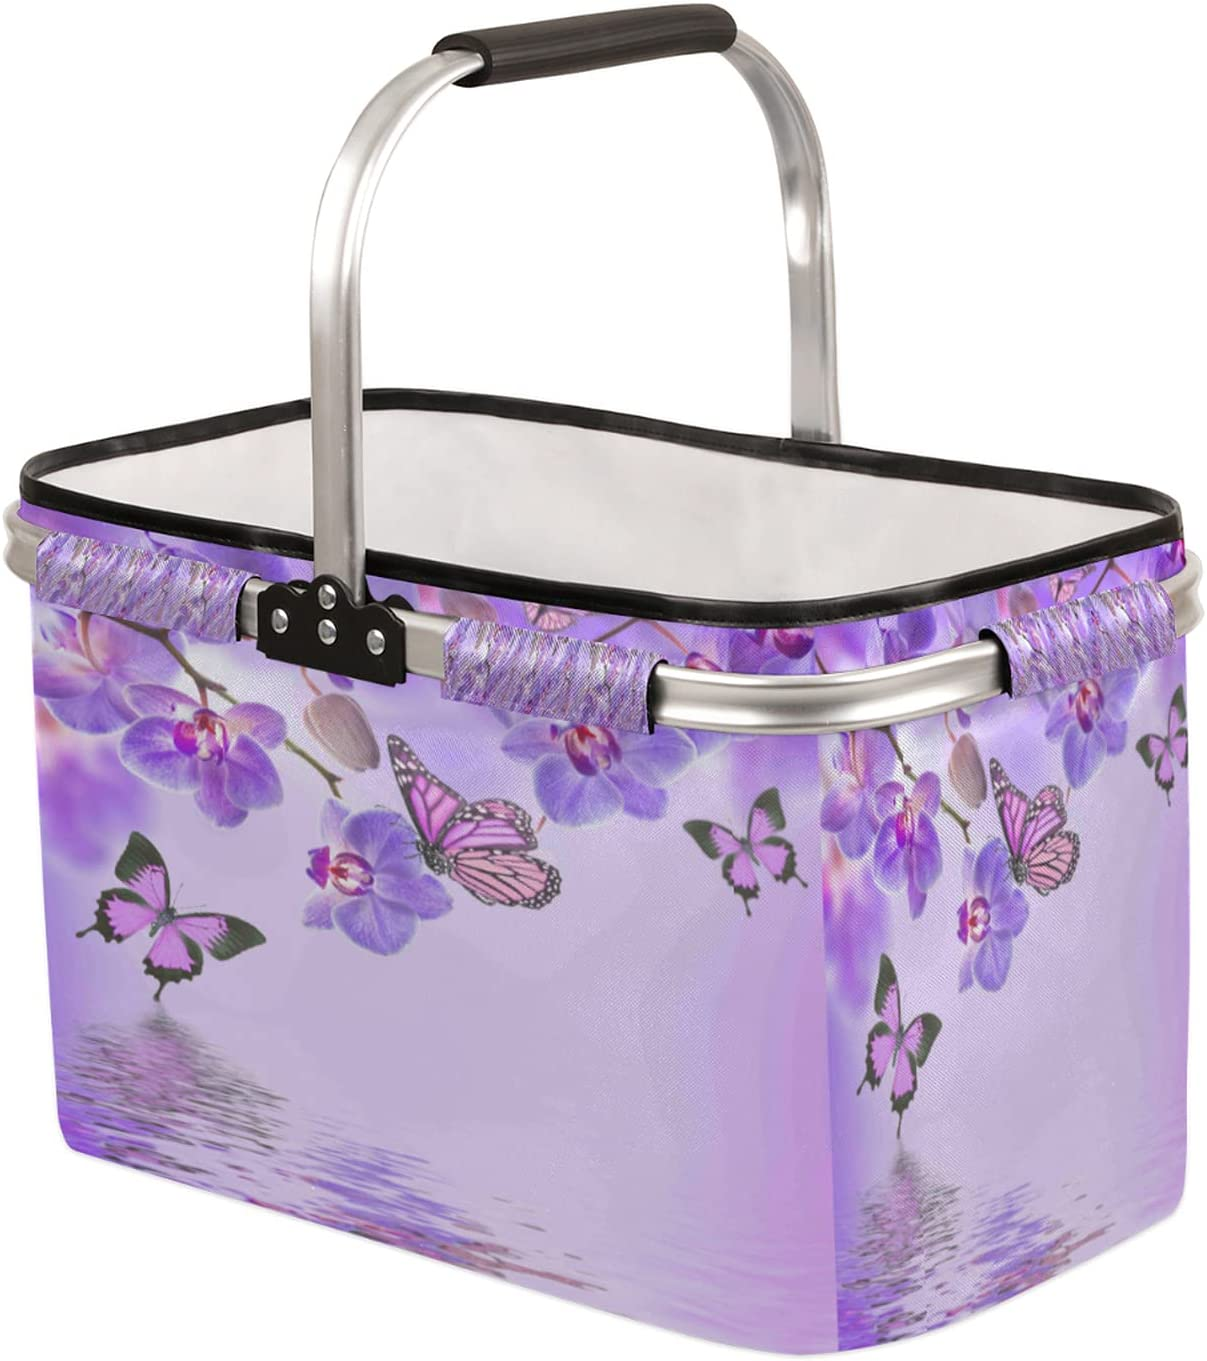 Collapsible Market Basket with Max 83% OFF Strong Handle Soft Directly managed store Aluminum Frame